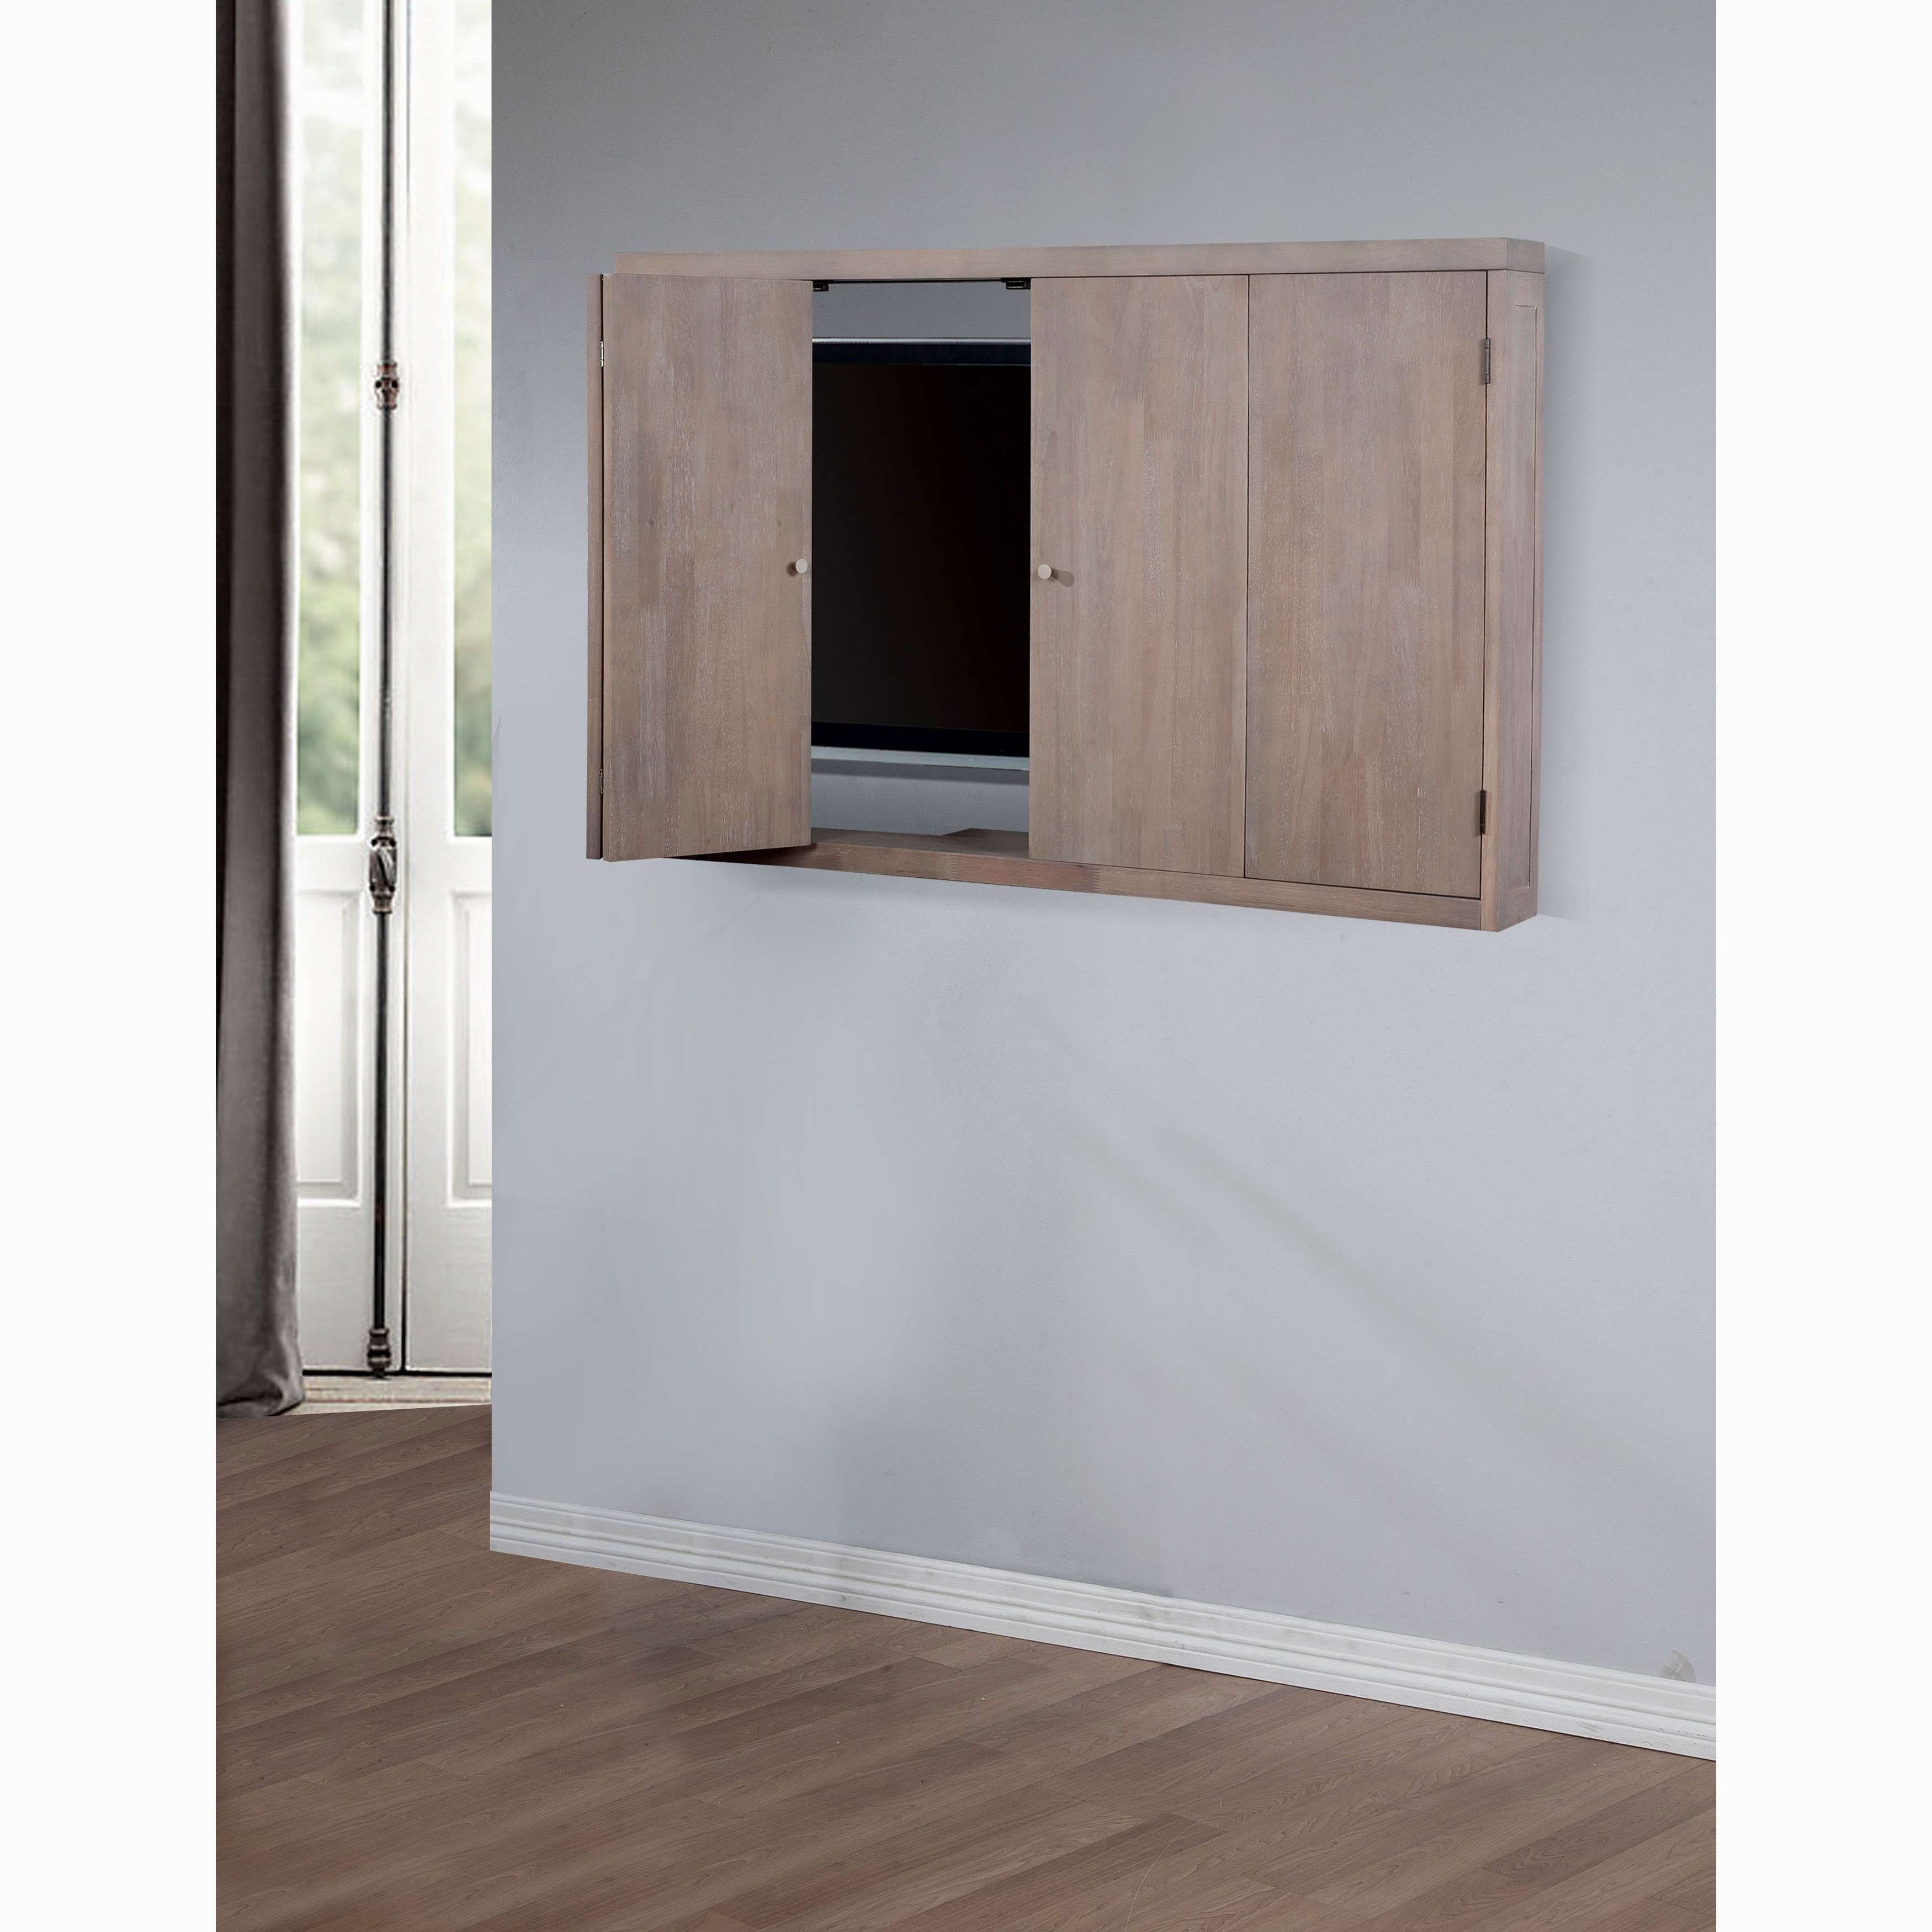 Hanging Tv Cabinet With Doors Choice Image – Doors Design Ideas Regarding Wall Mounted Tv Cabinets With Doors (View 6 of 20)